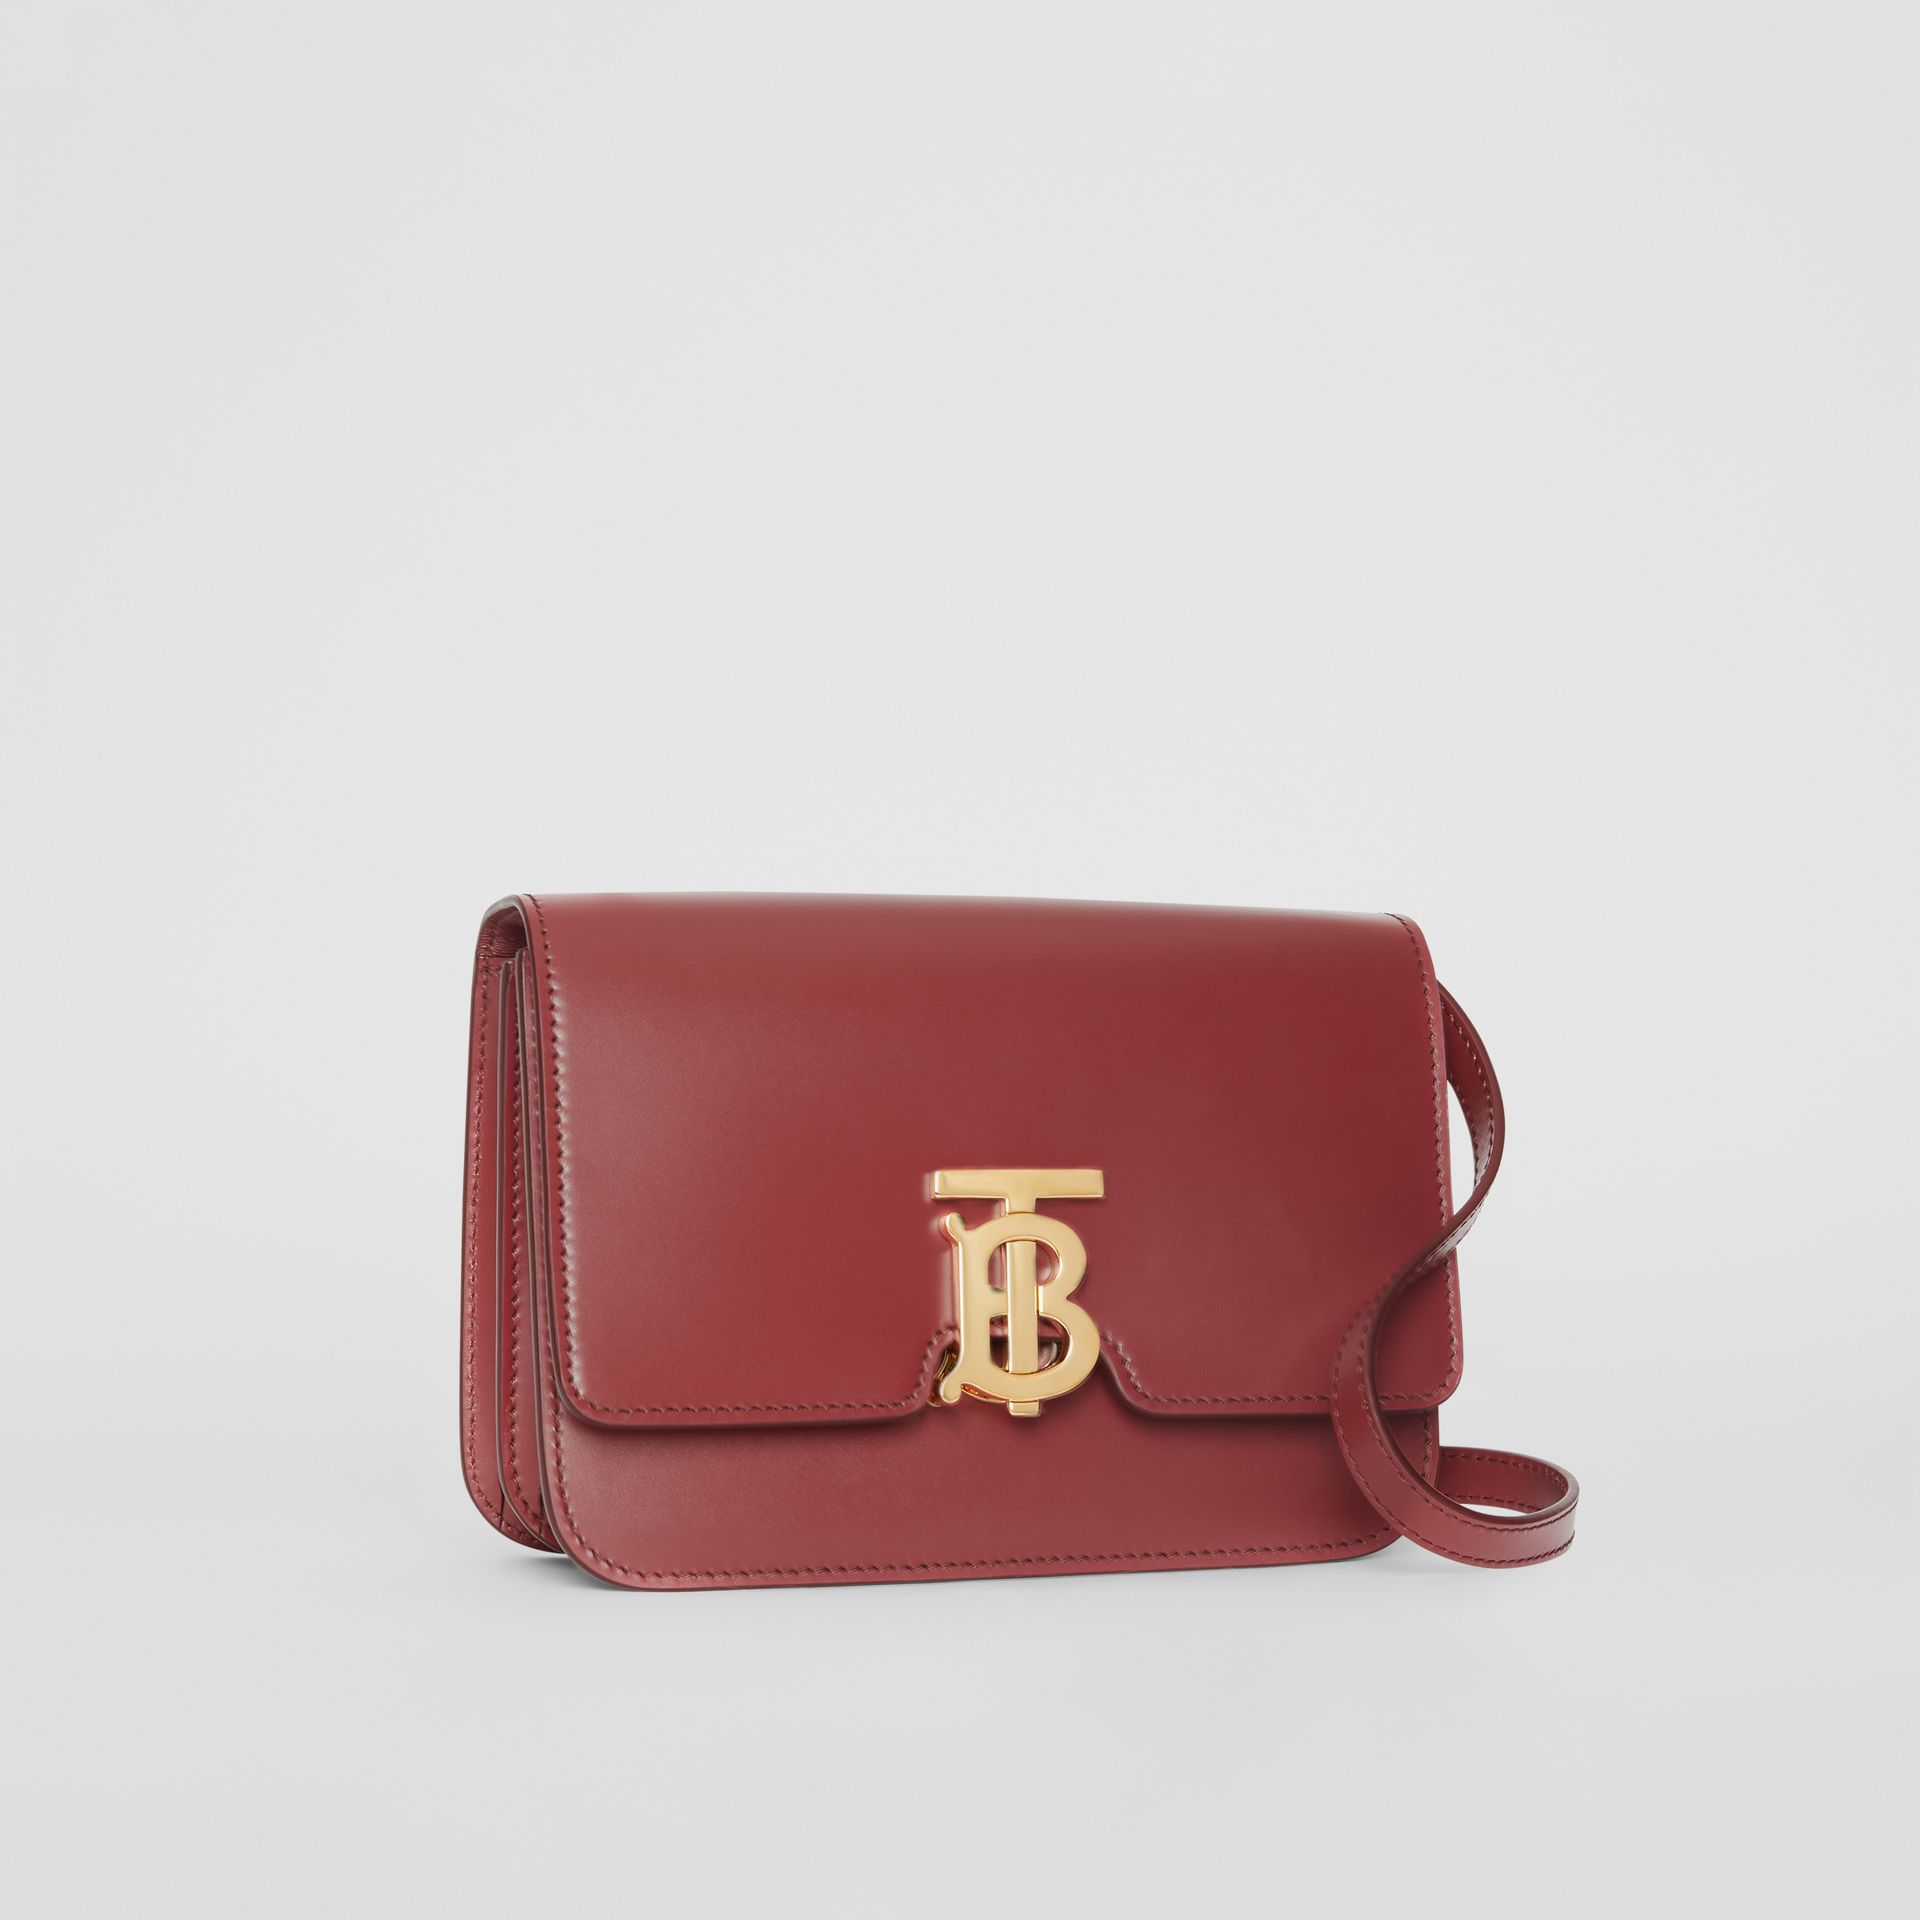 Small Leather TB Bag in Crimson - Women | Burberry United Kingdom - gallery image 6